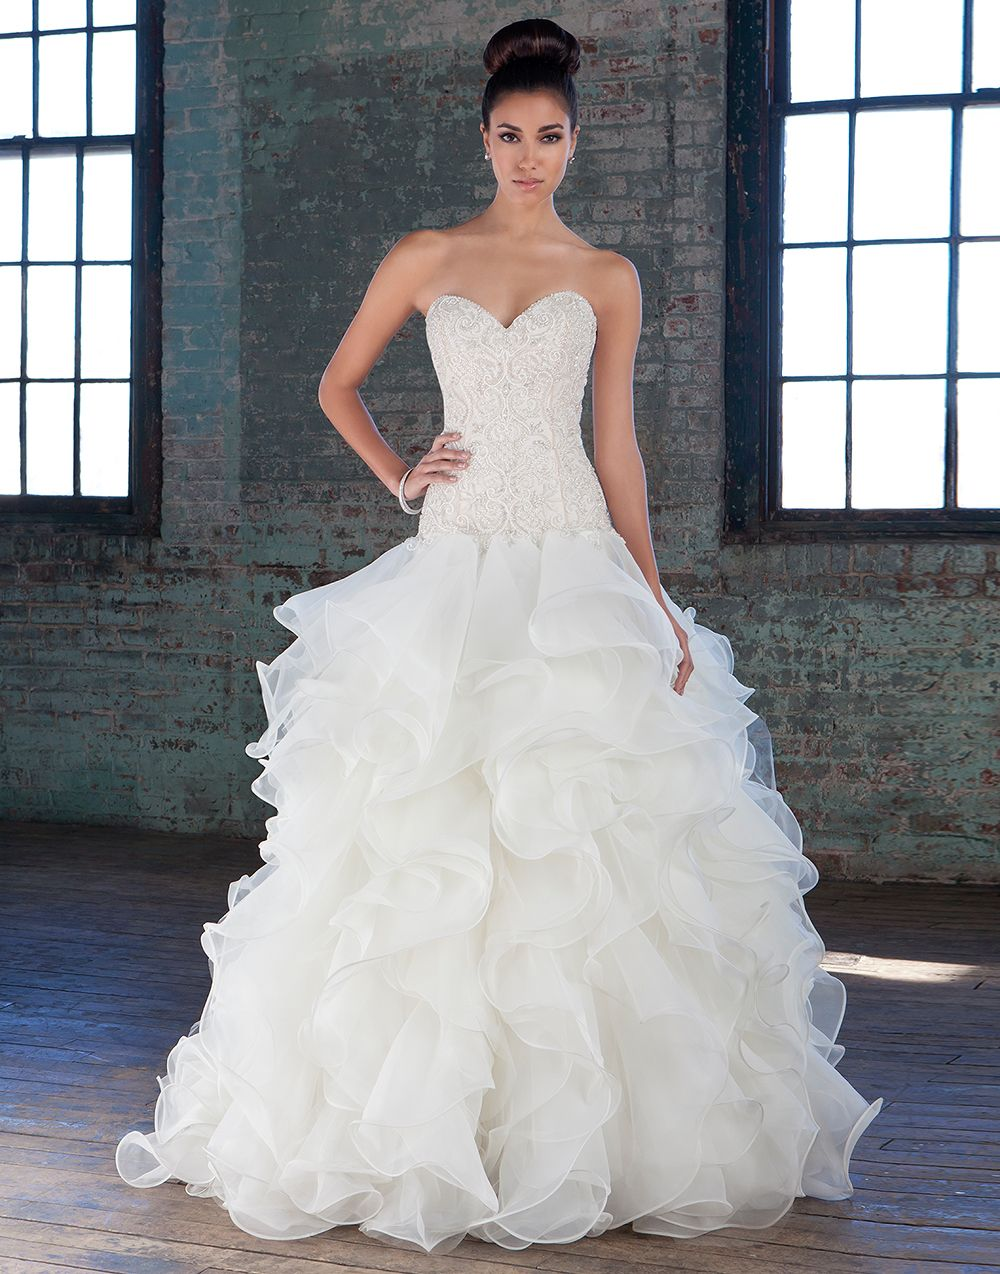 Spectacular  signature wedding dresses style The intricately hand beaded crystal and pearl sweetheart bodice dropped waistline and full organza ruffle skirt